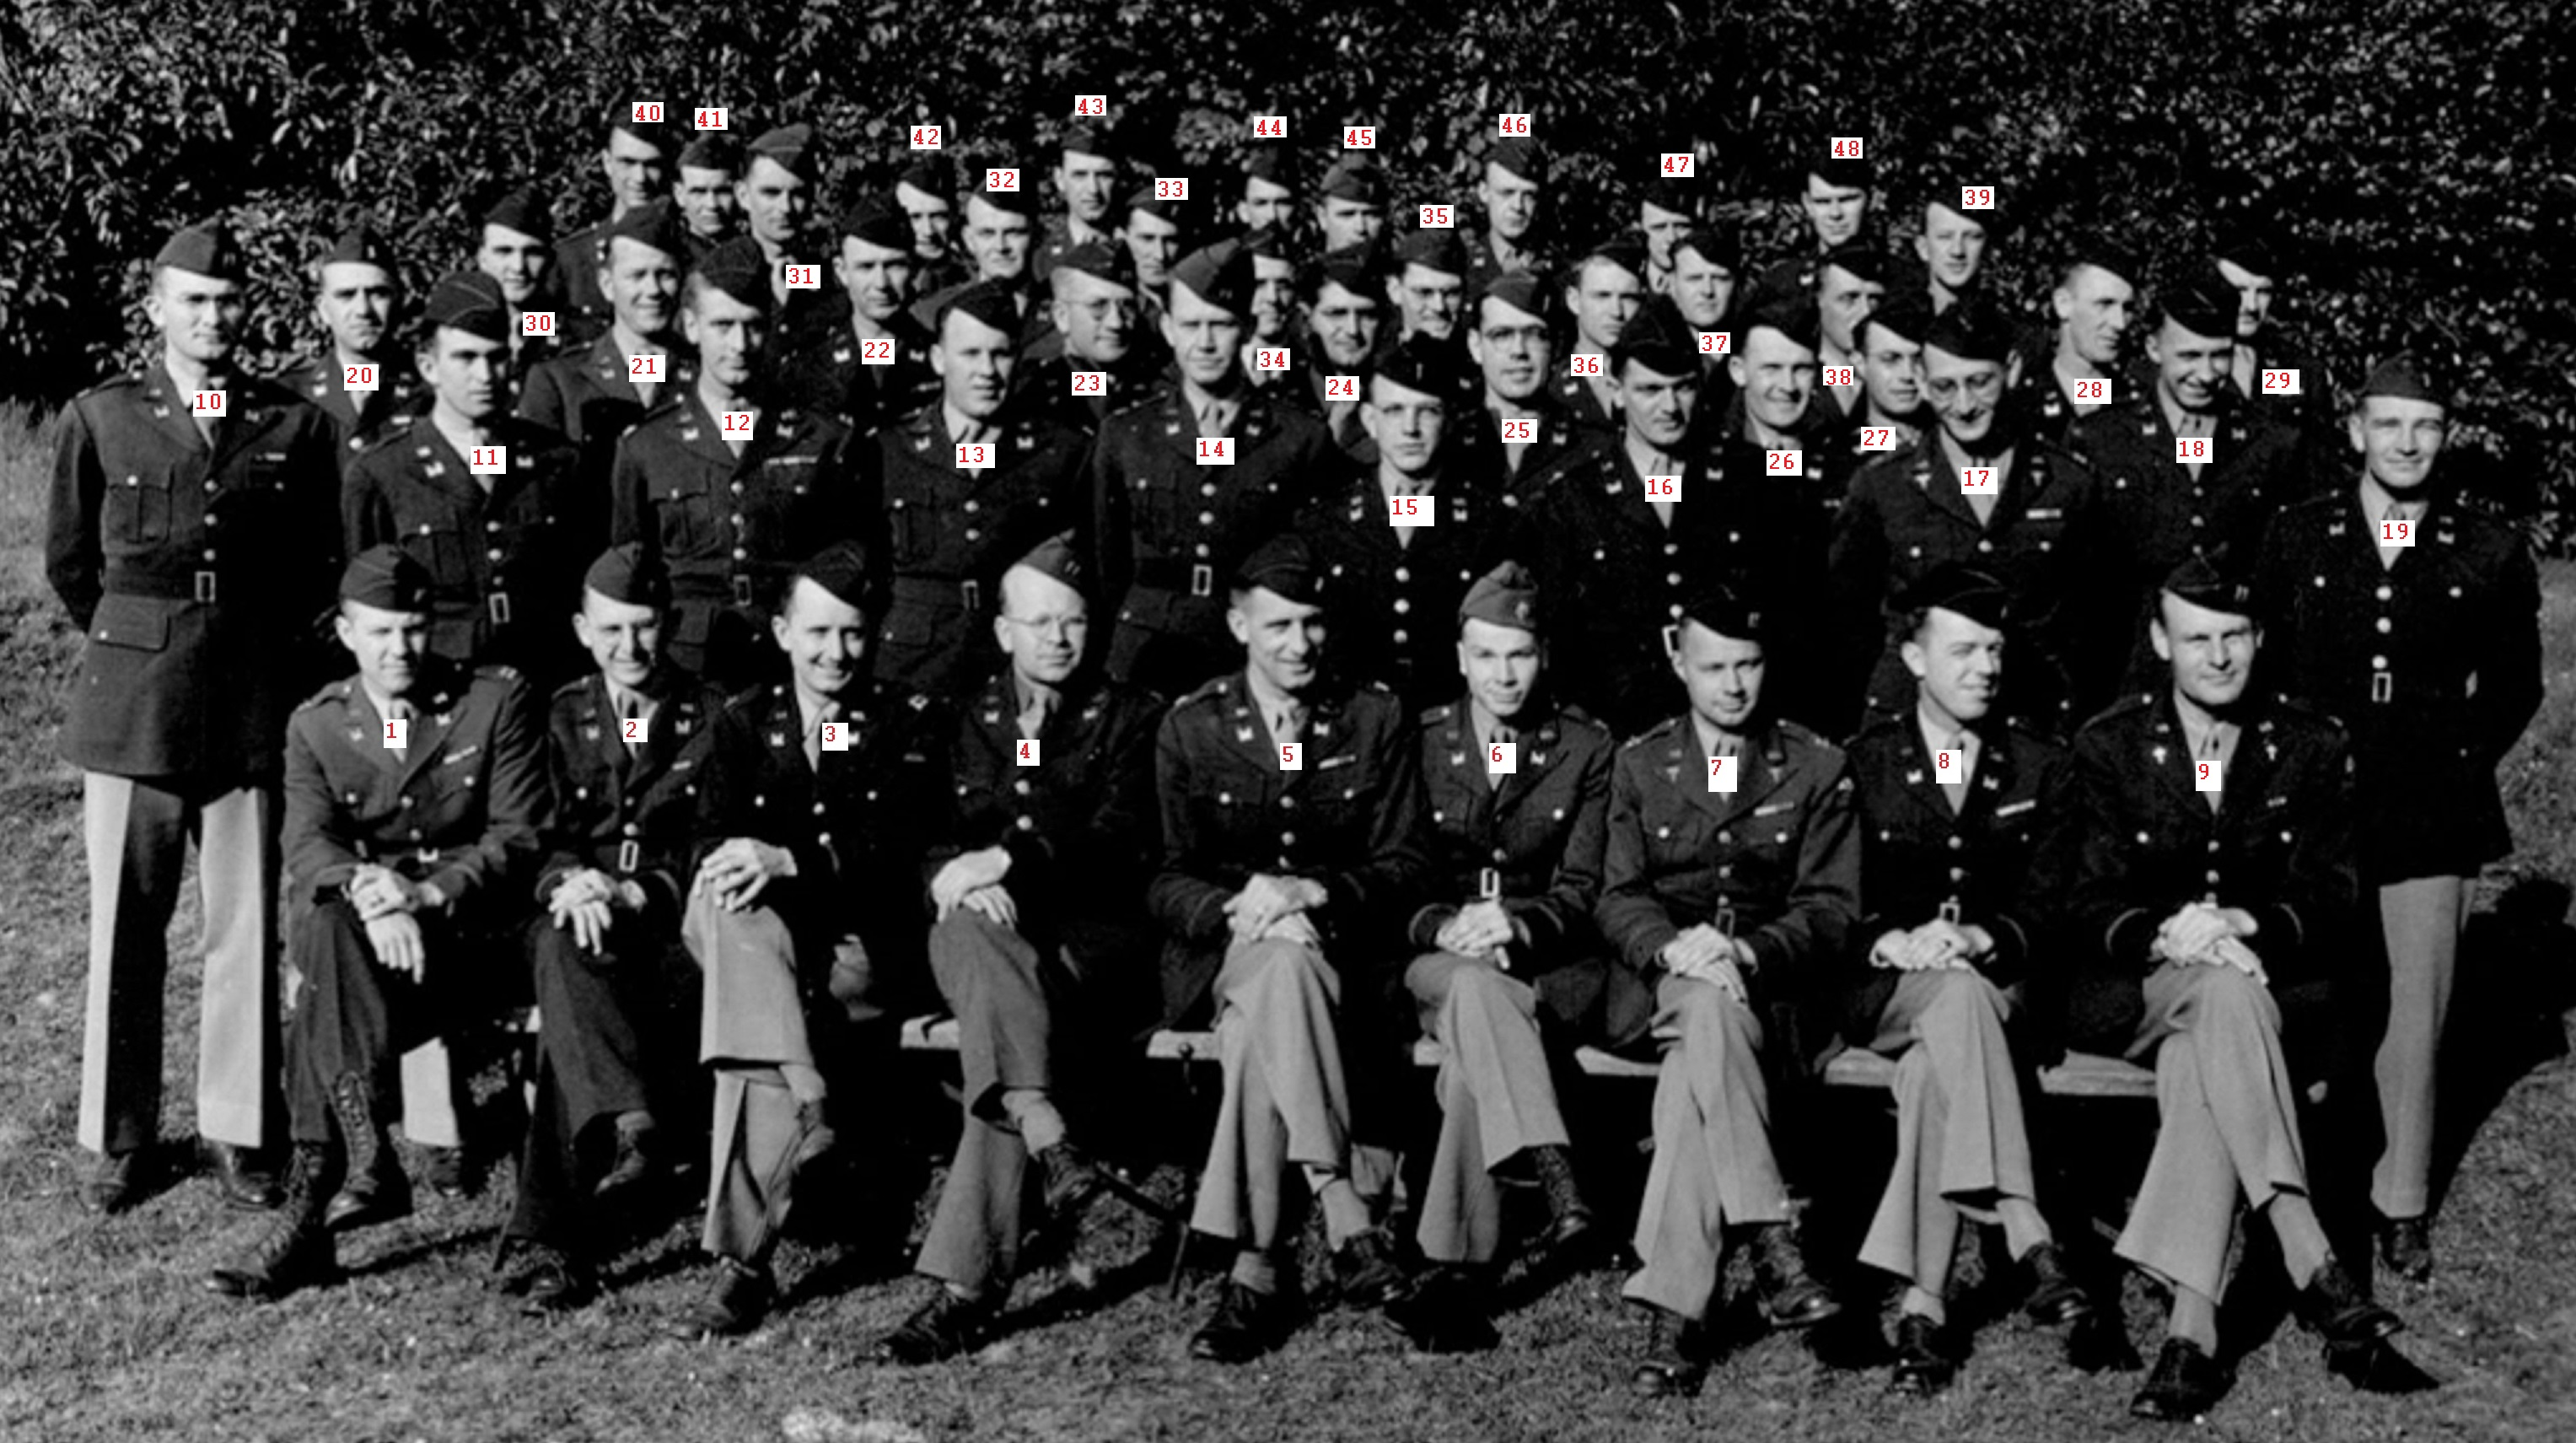 Numberd Officer Staff 17th Engineers at Tidworth Barracks Engeland, june, may 1944 S. Benninger